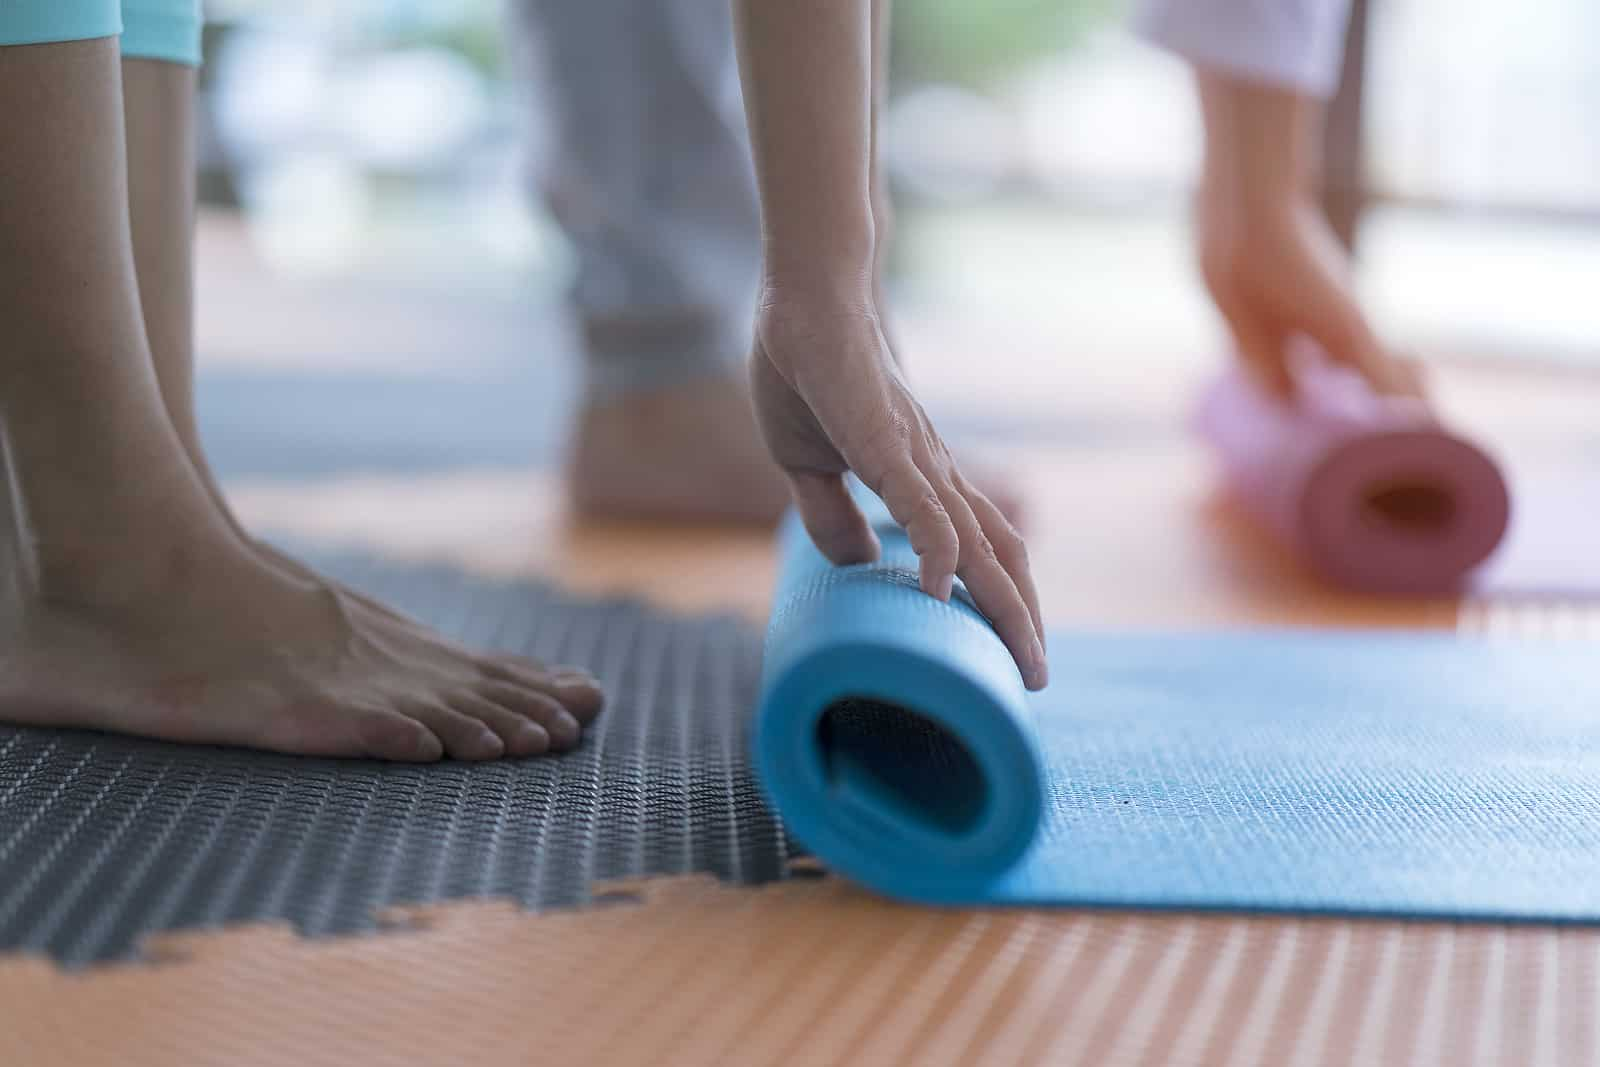 How to clean a yoga mat during COVID + what to bring